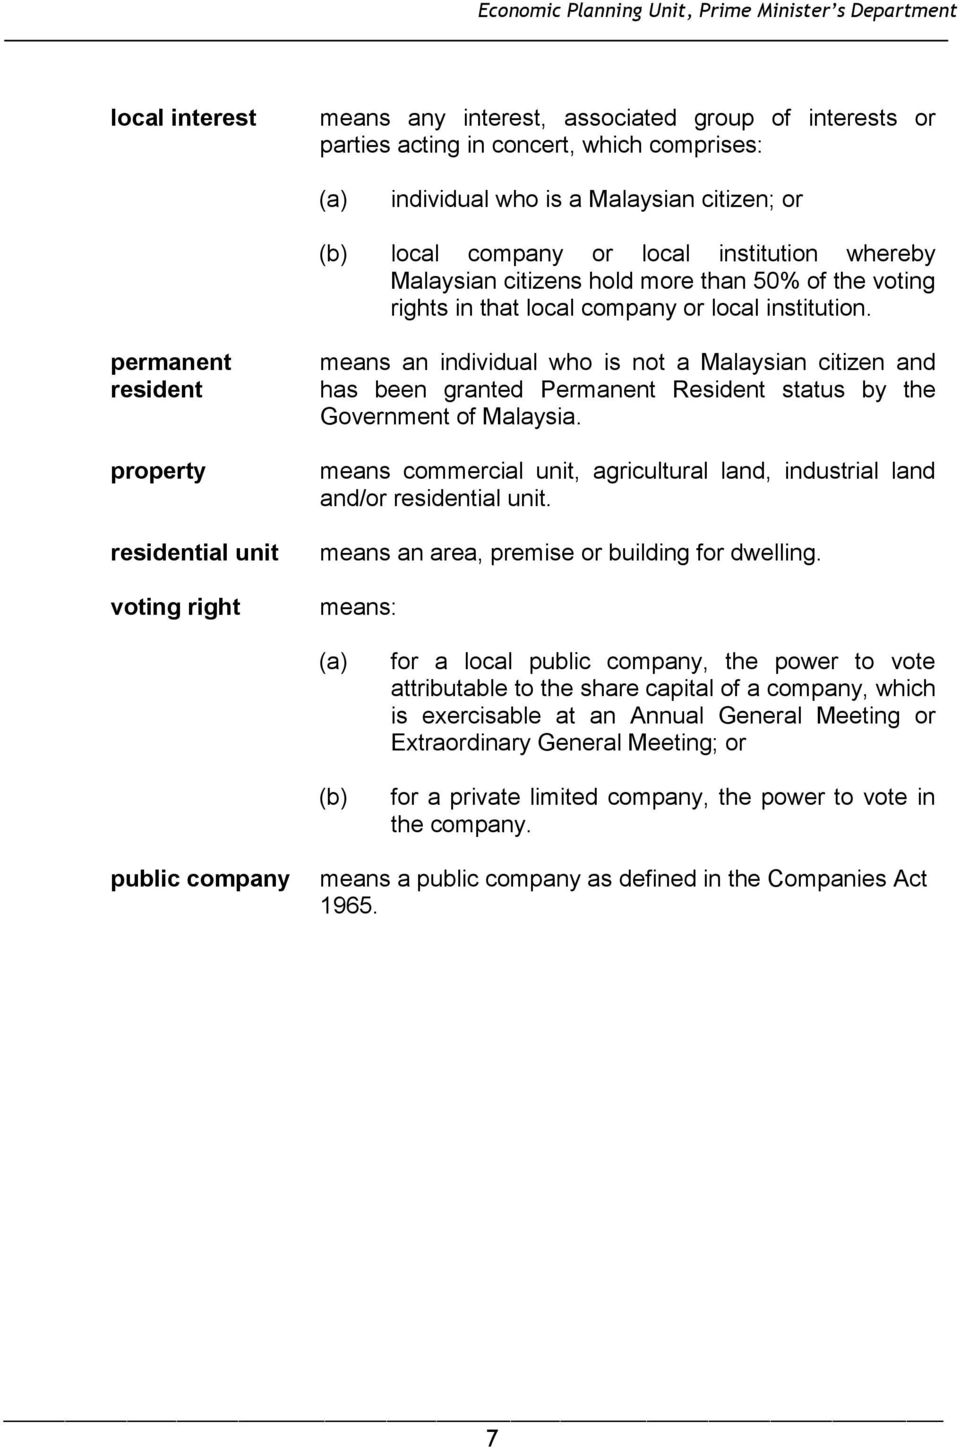 permanent resident property residential unit voting right means an individual who is not a Malaysian citizen and has been granted Permanent Resident status by the Government of Malaysia.